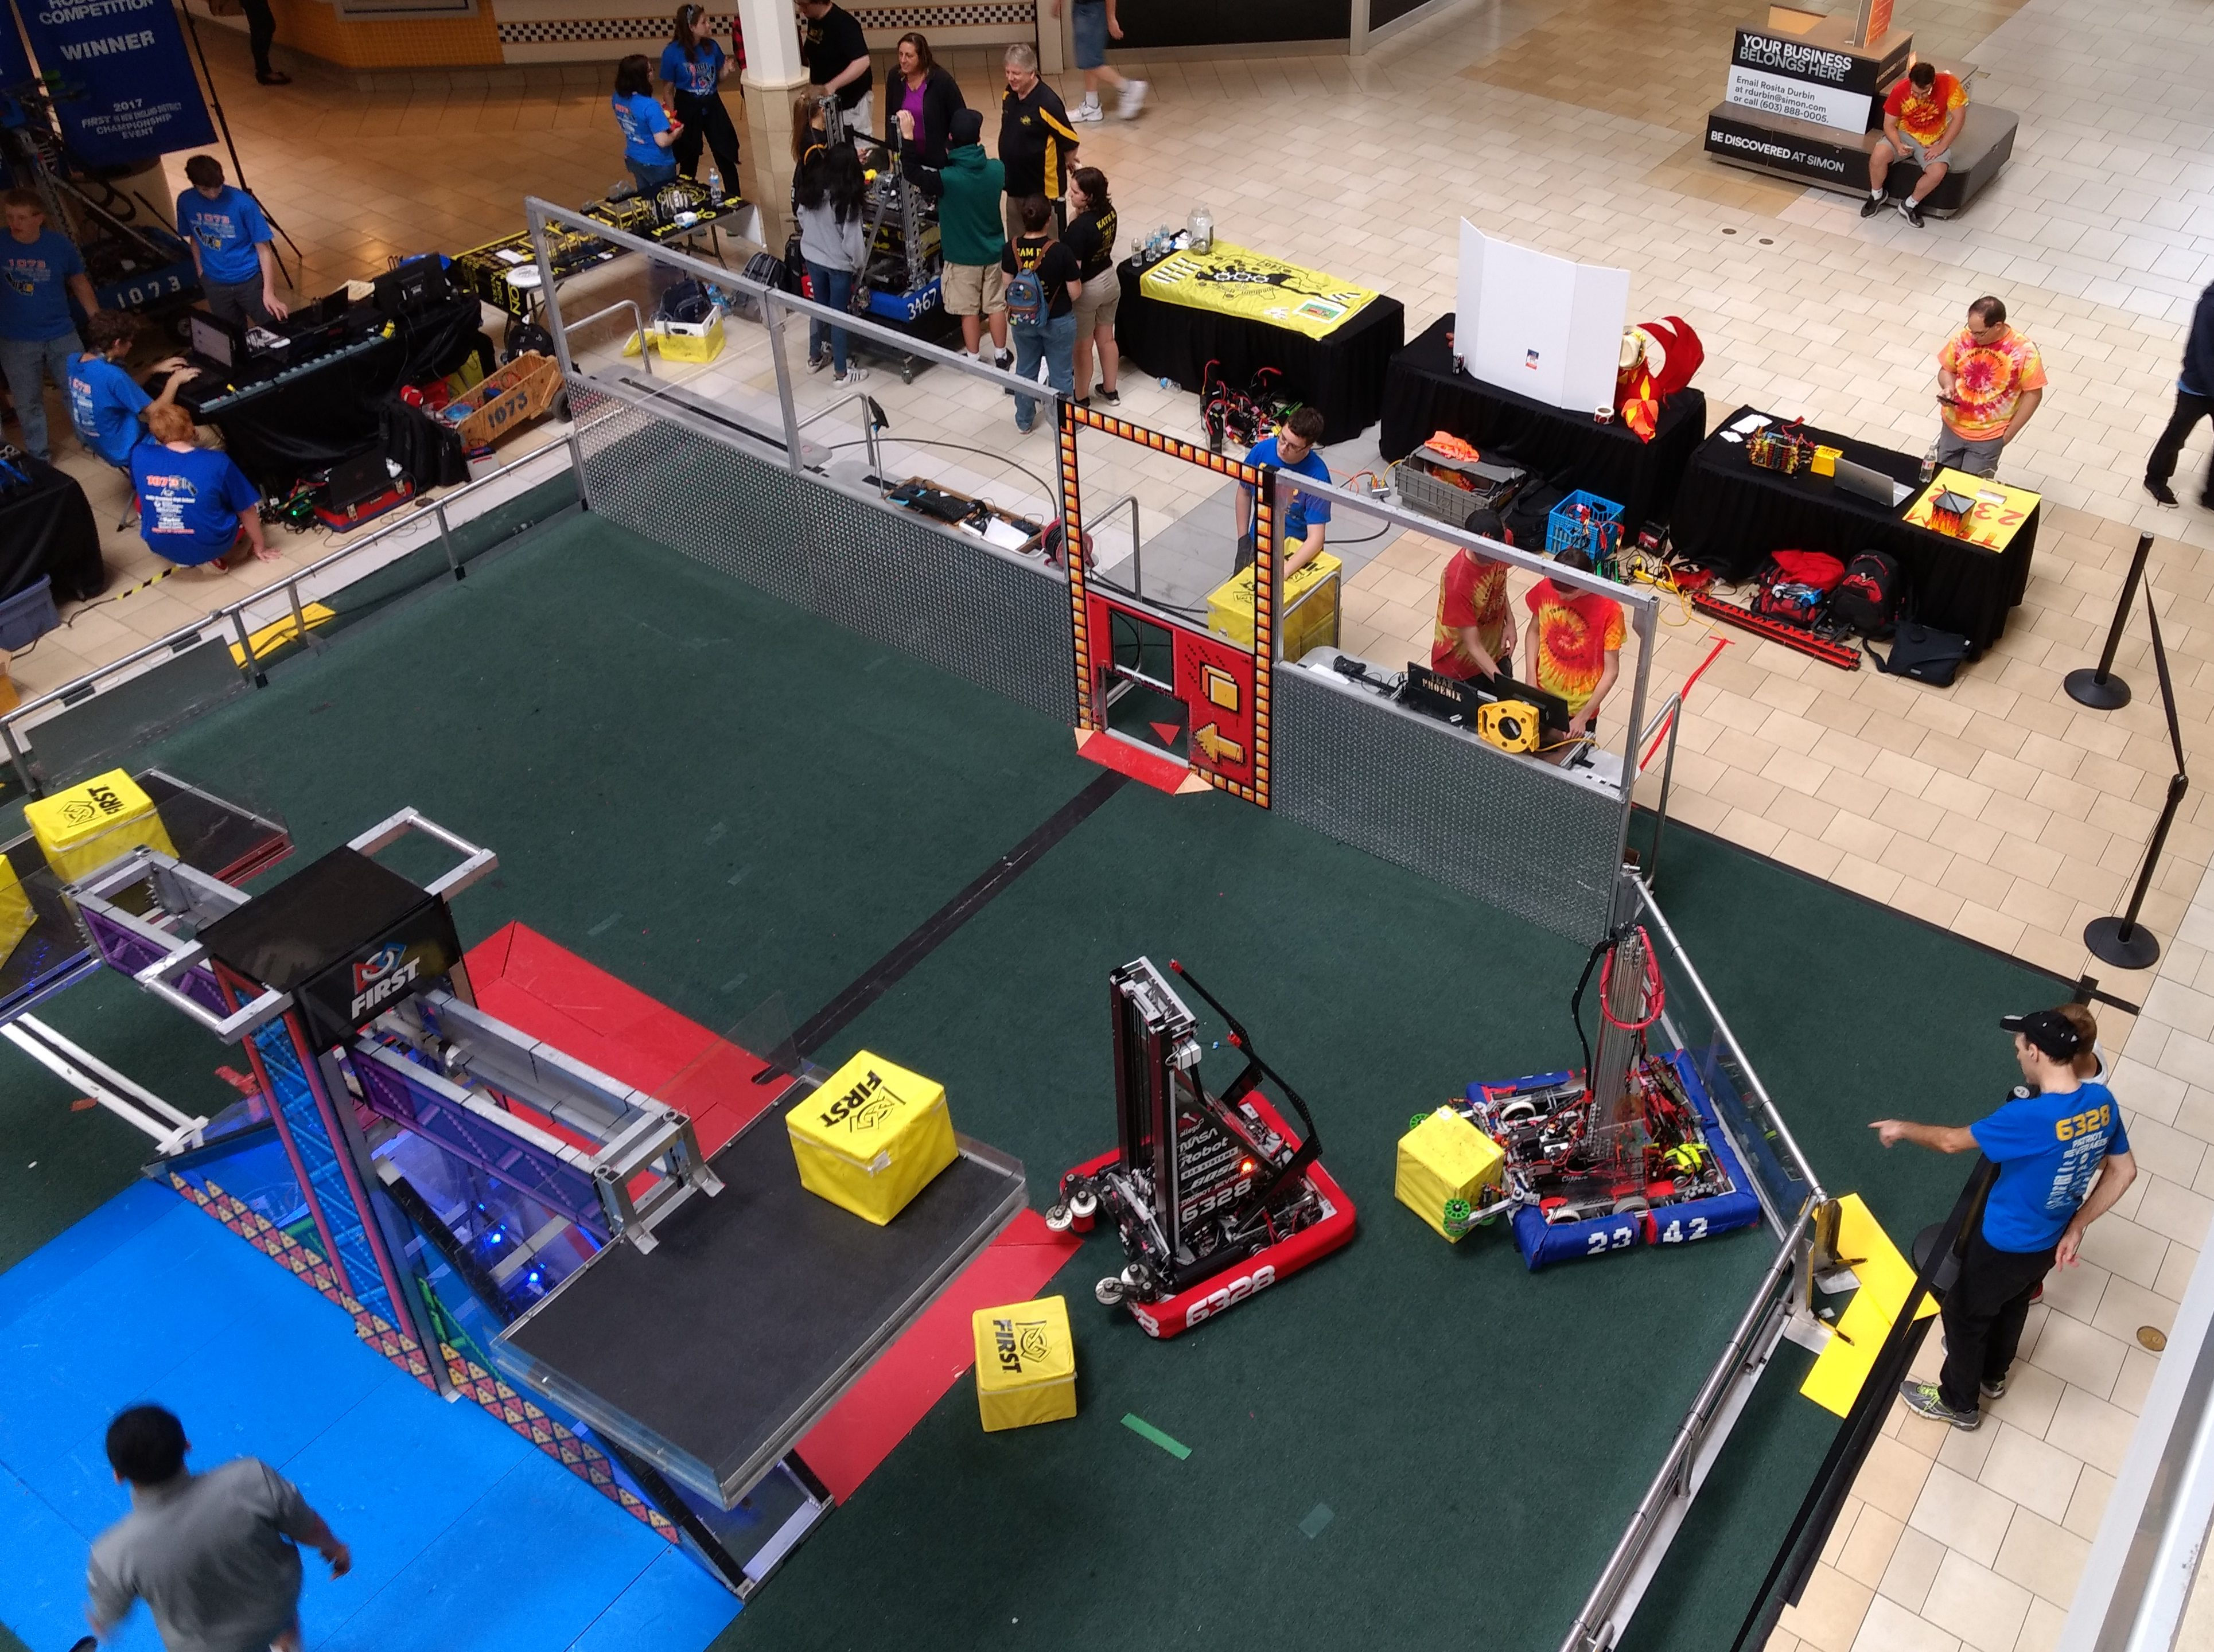 Robo-Expo at the Pheasant Lane Mall